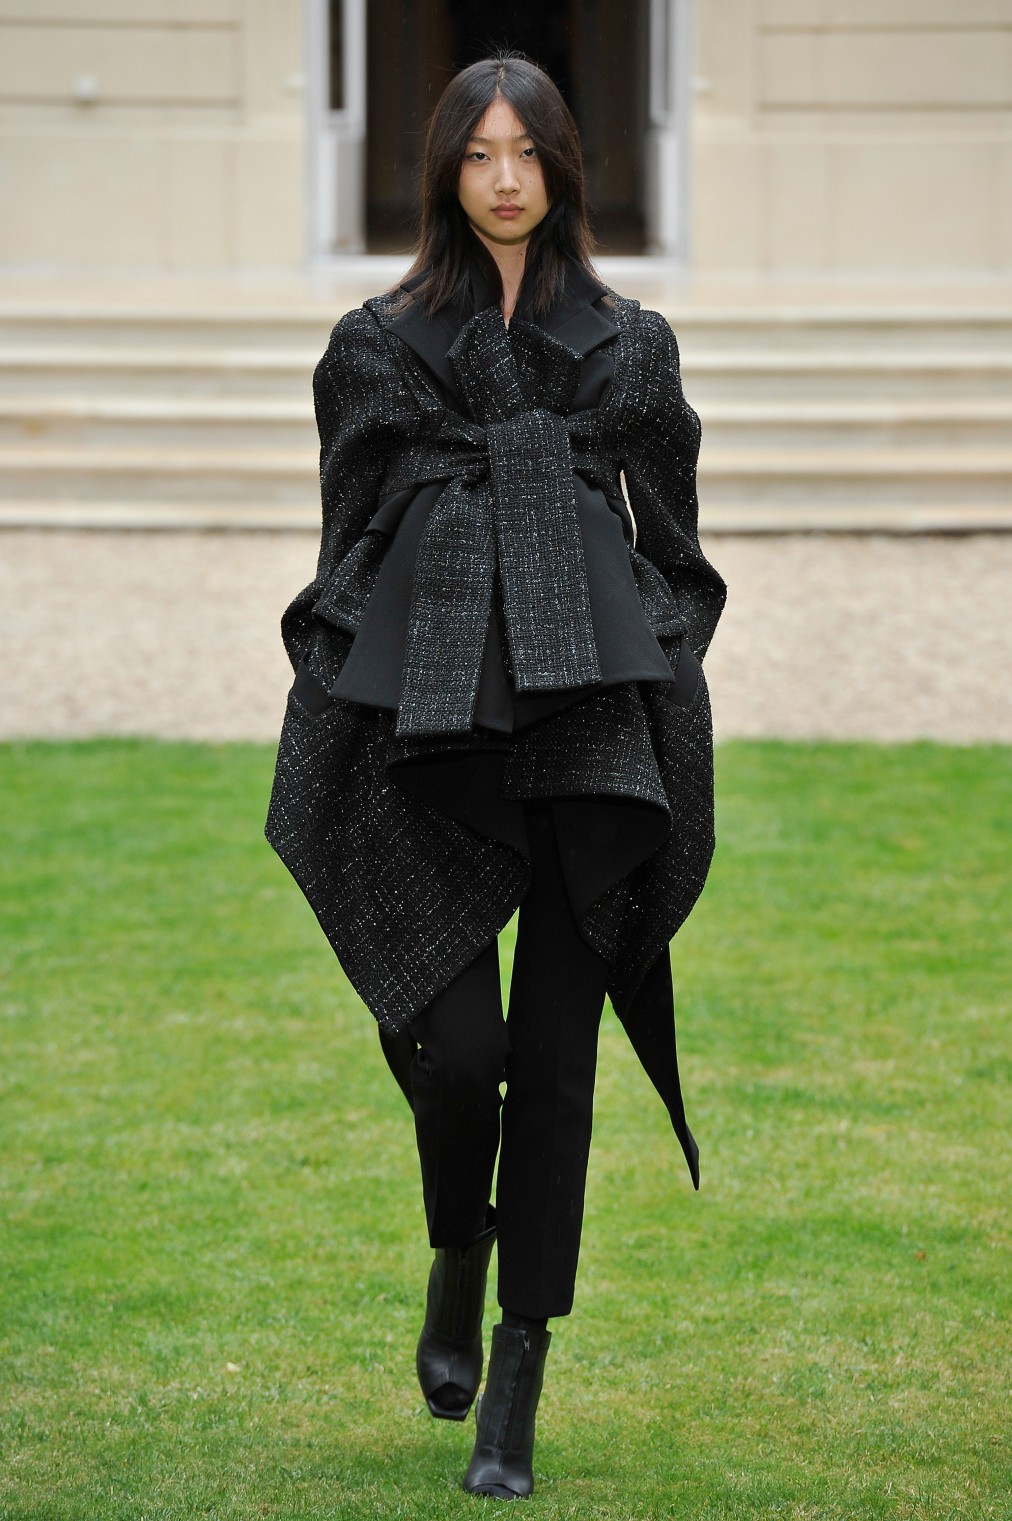 PARIS, FRANCE - JULY 09:  A model walks the runway during the Rad Hourani show as part of Paris Fashion Week - Haute Couture Fall/Winter 2014-2015 at the residence of the Canadian Ambassador to France on July 9, 2014 in Paris, France.  (Photo by Kristy Sparow/Getty Images)